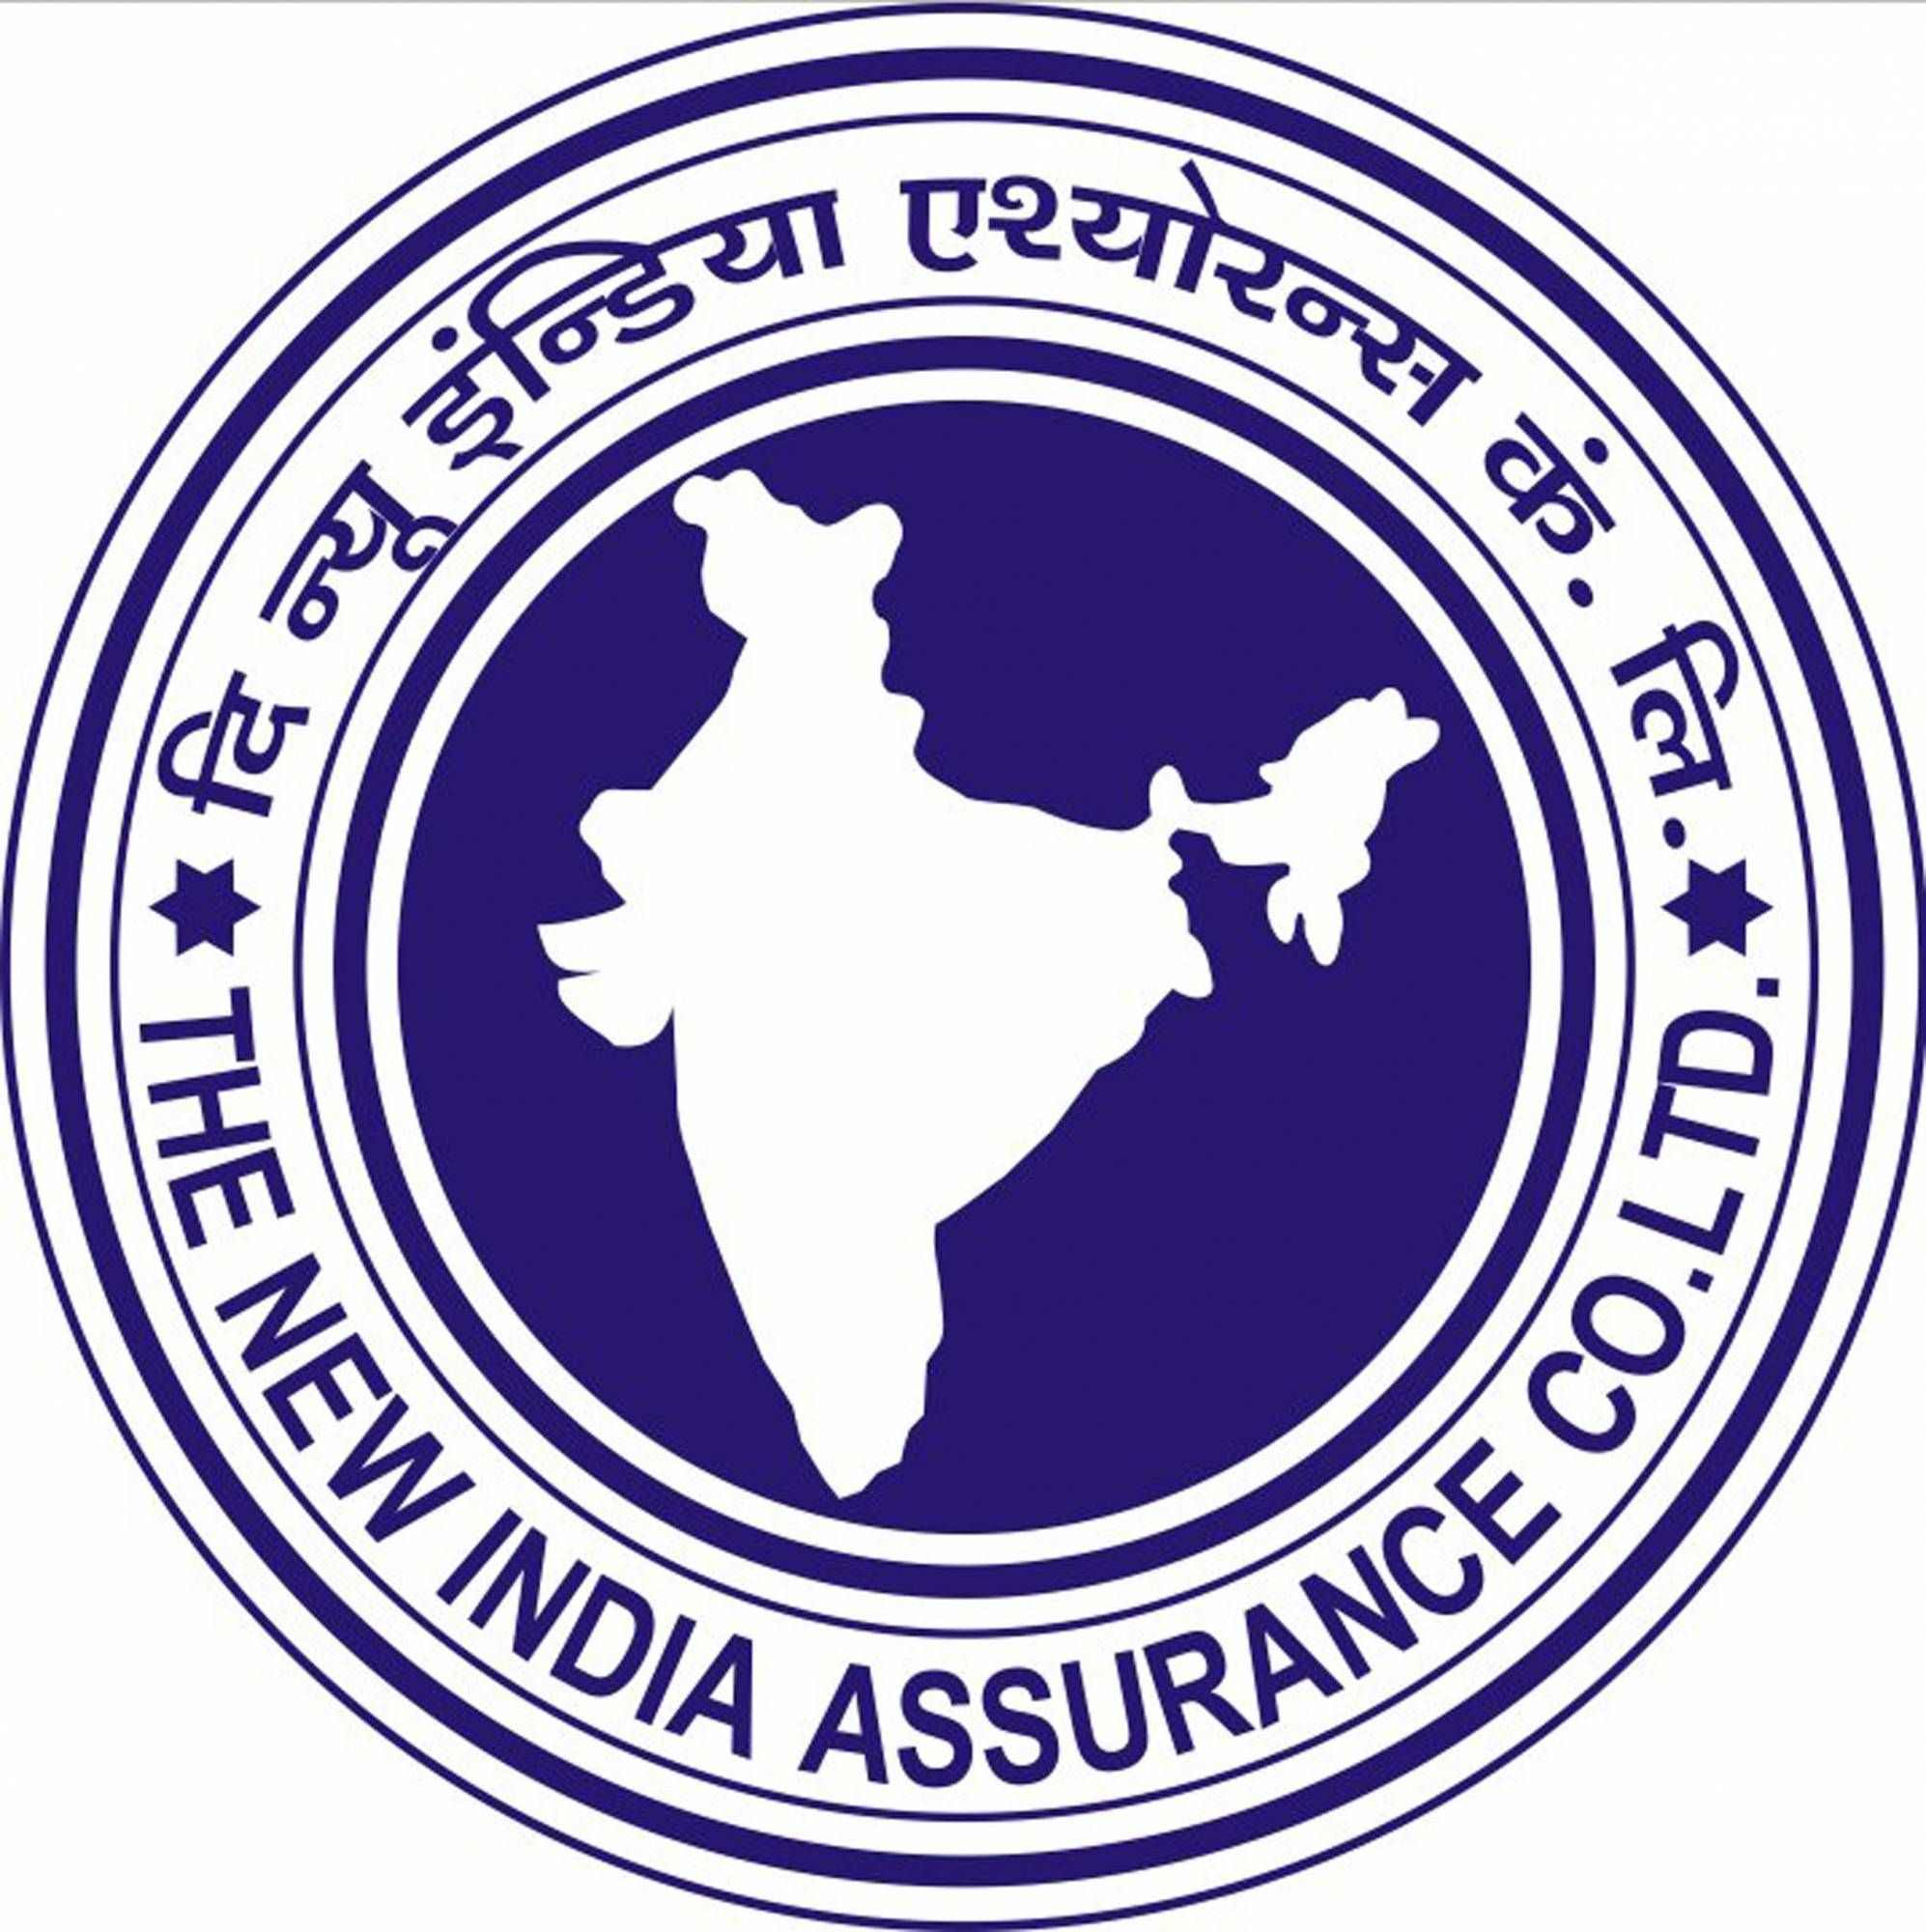 New India Assurance Logo By Yetta Hoppe News India Assistant